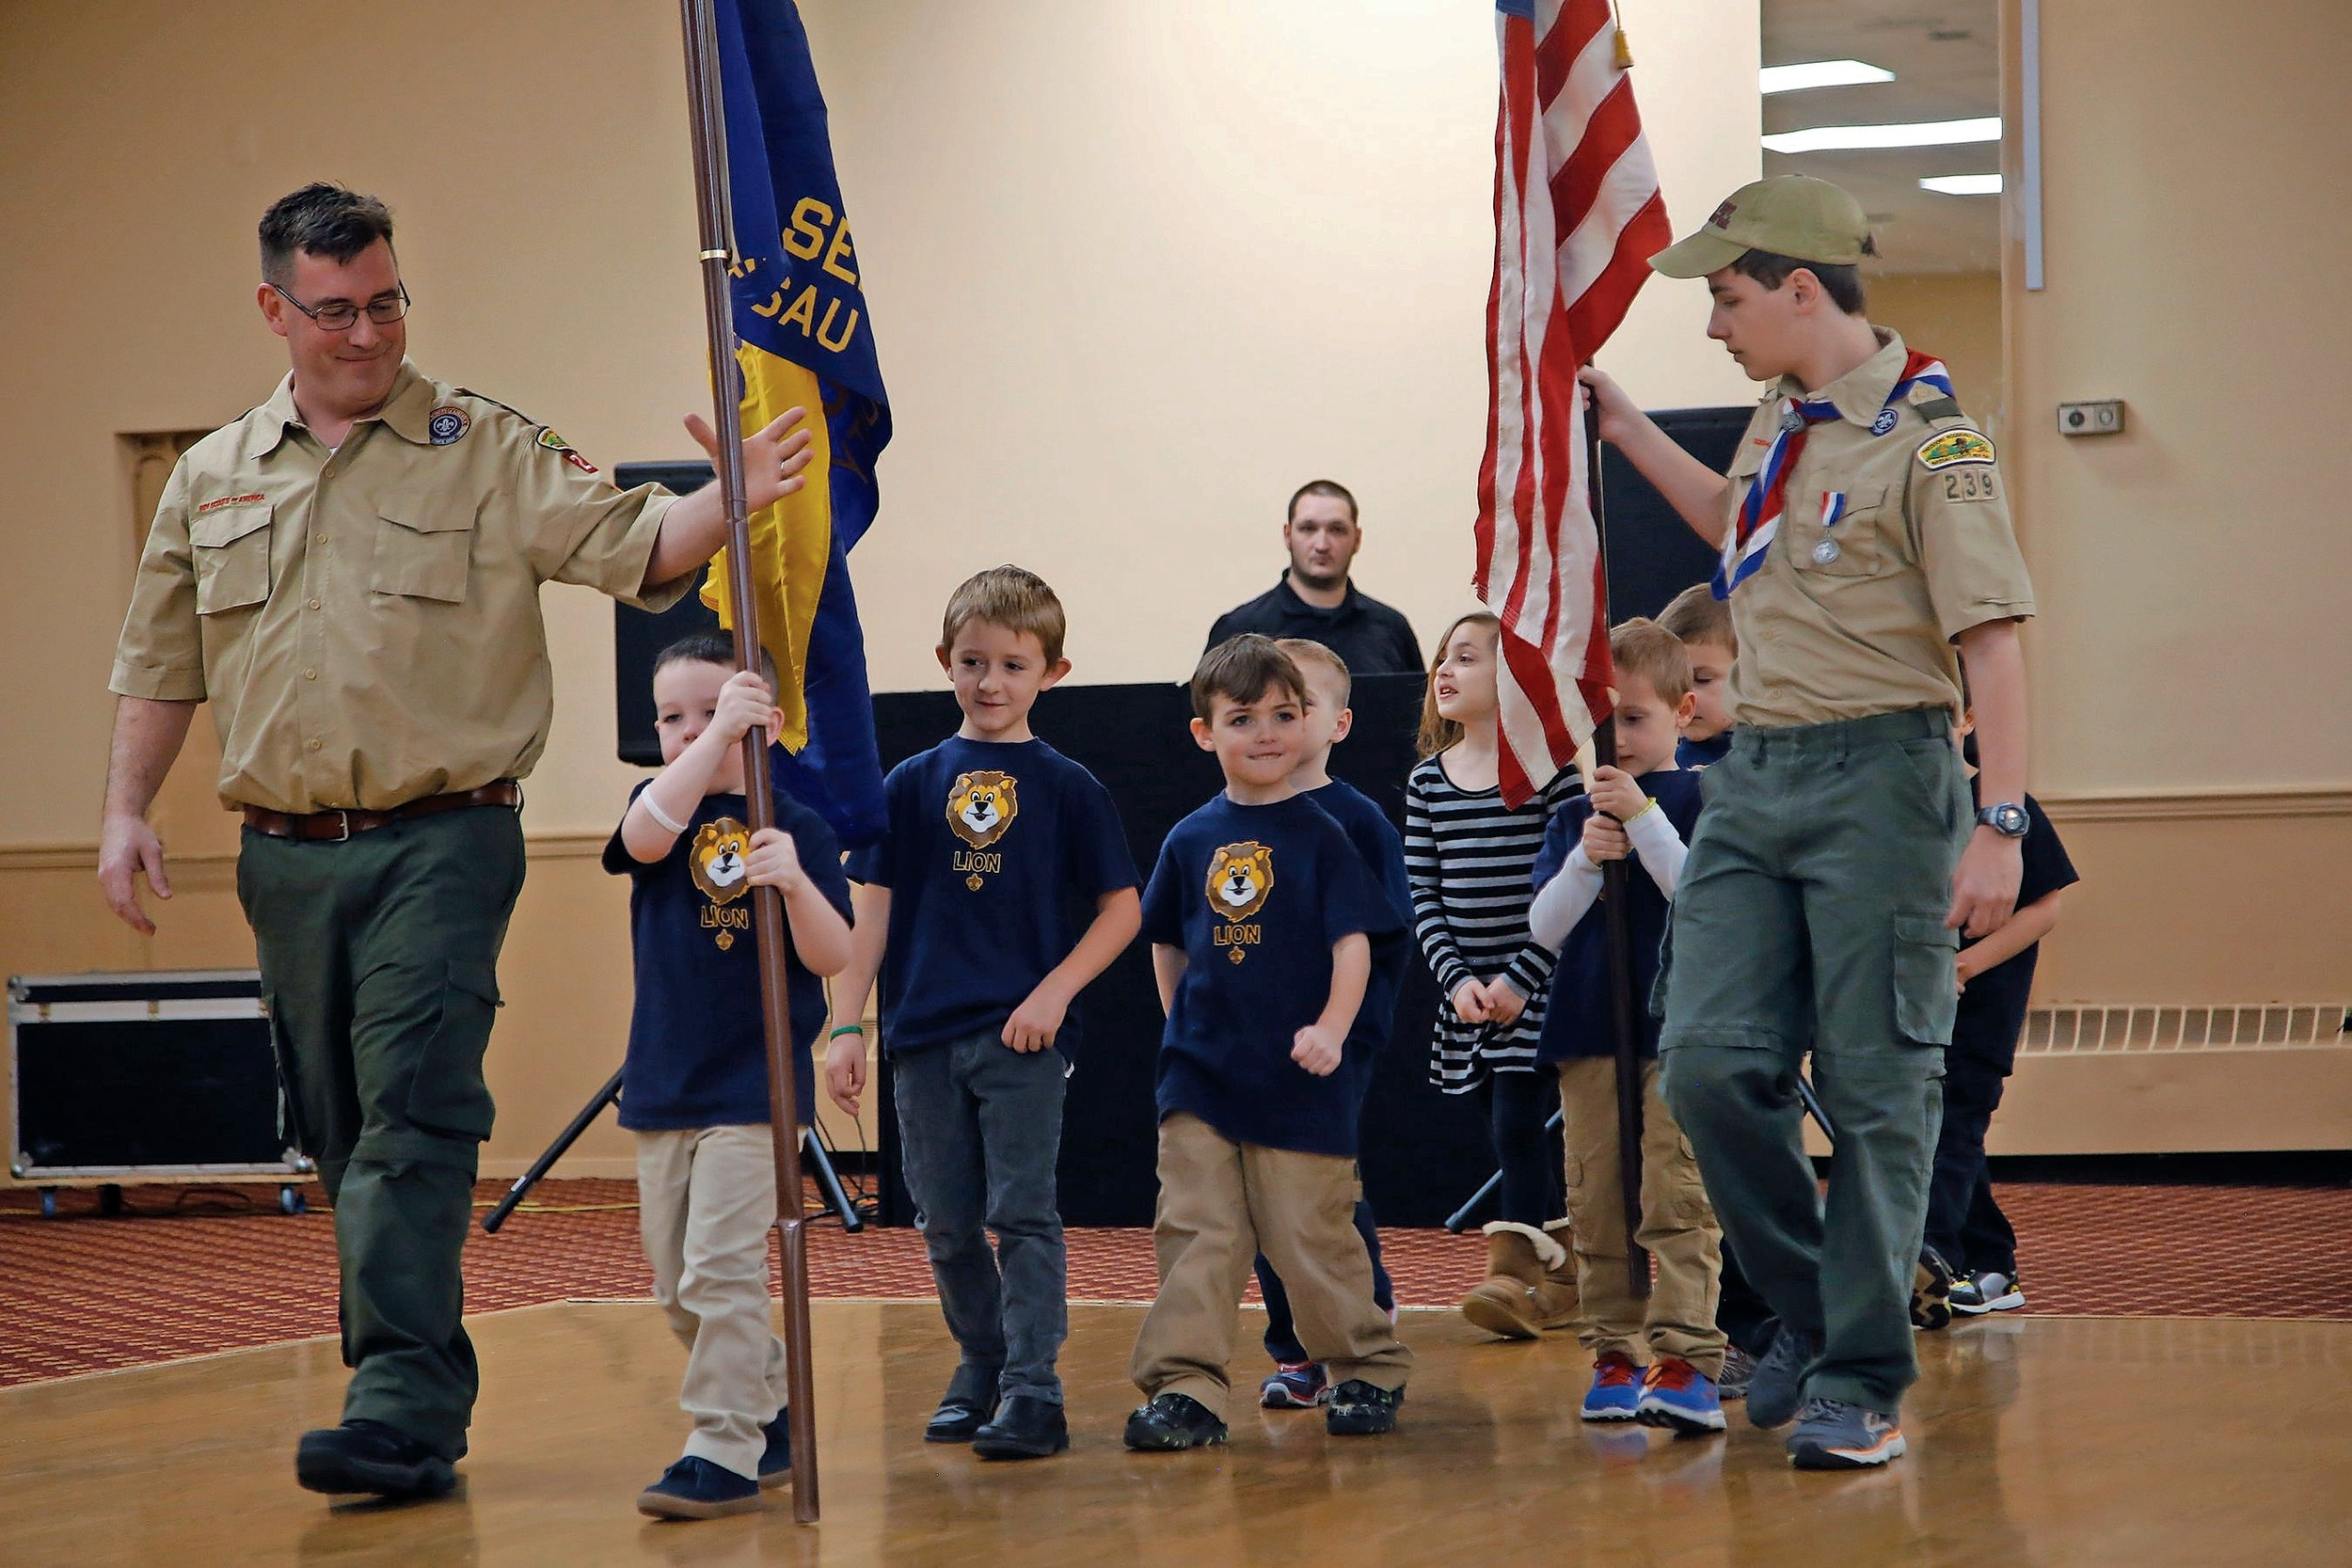 Cubs Become Boy Scouts At Annual Banquet